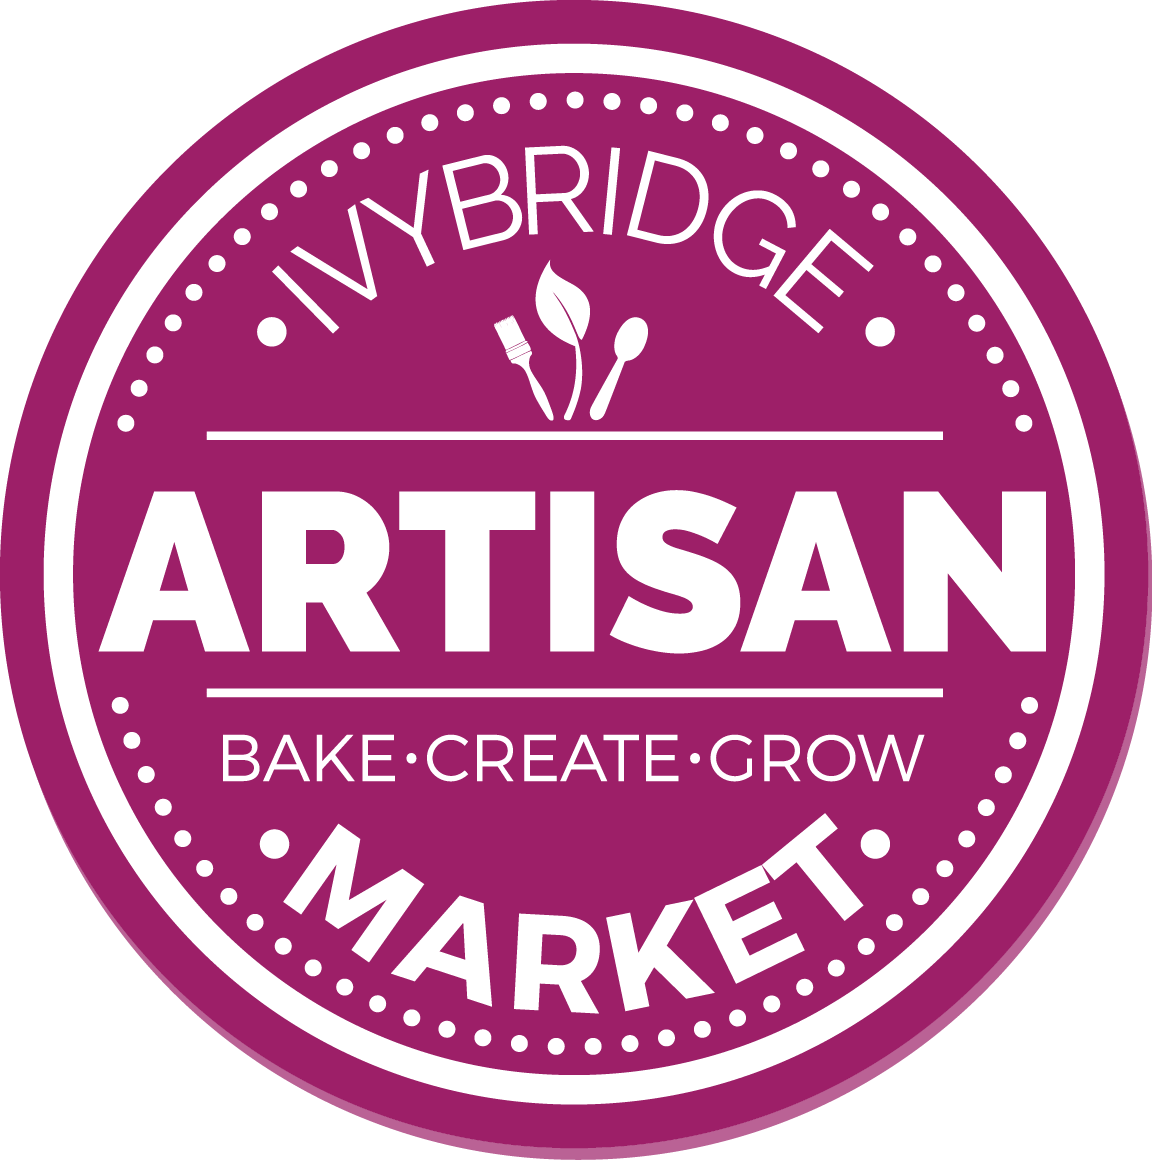 About the Ivybridge Artisan Market